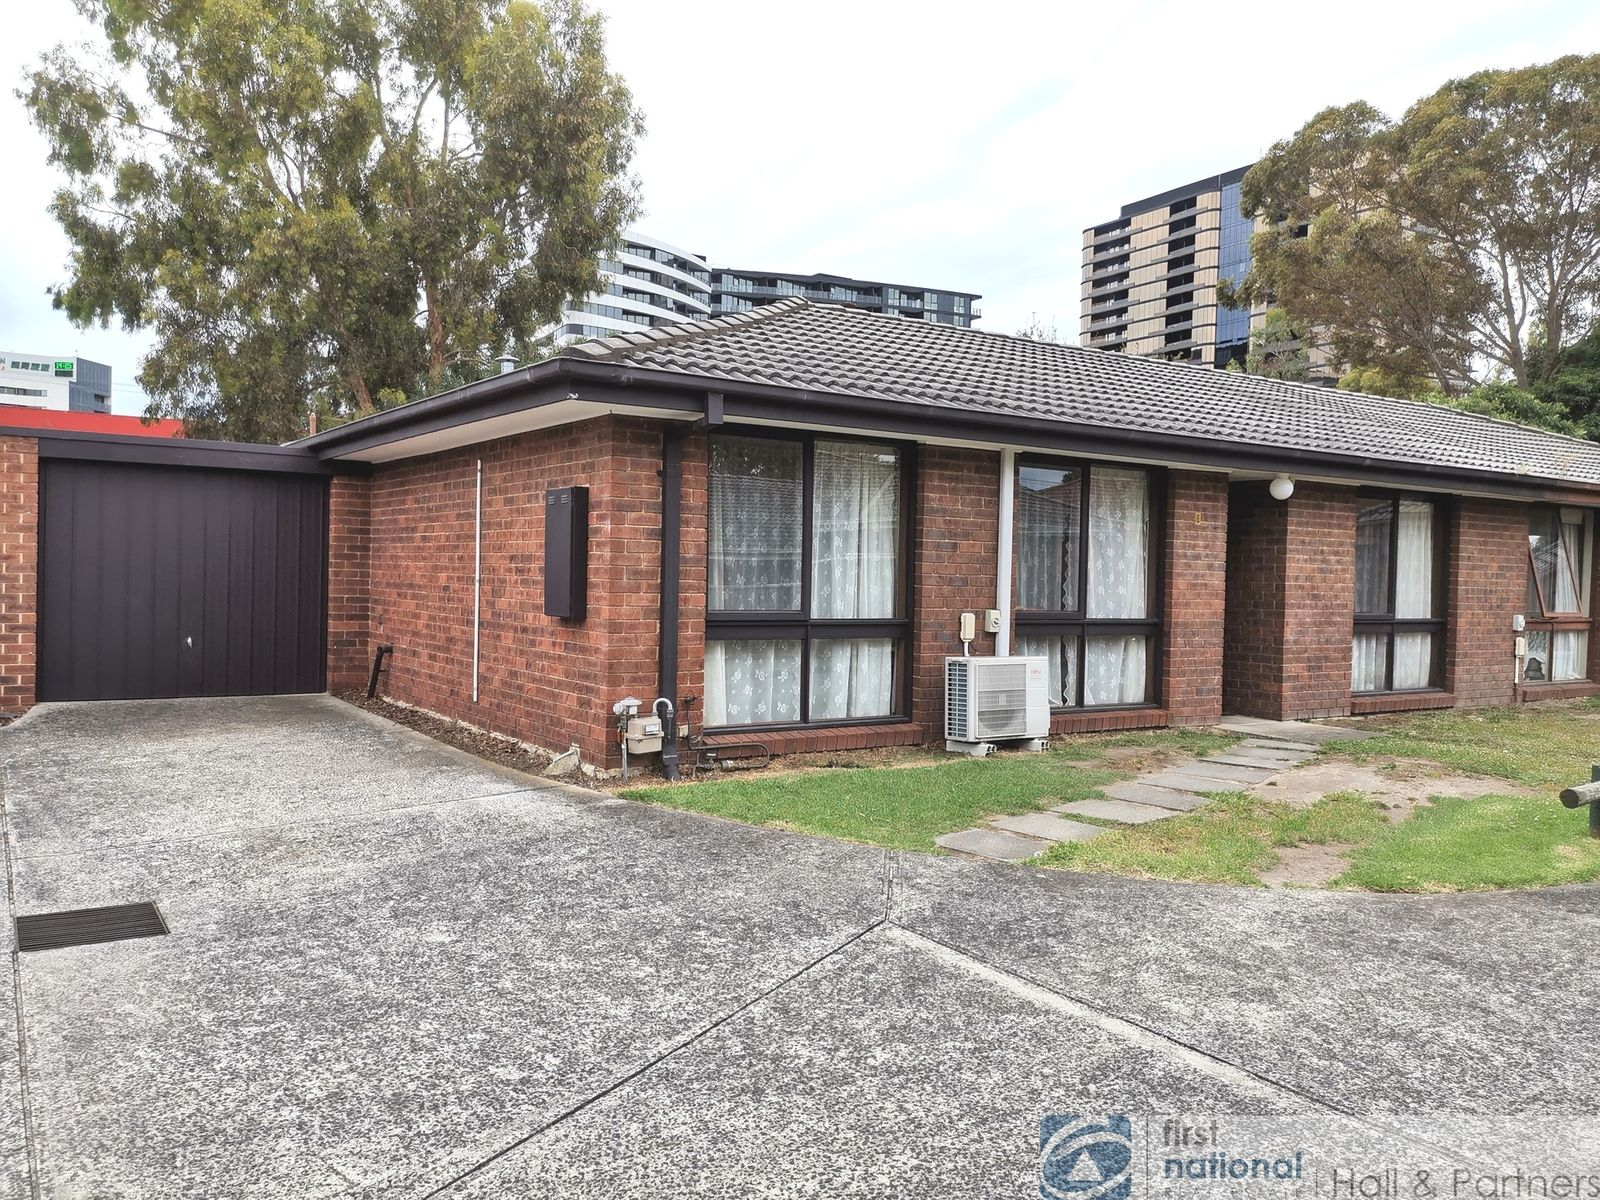 6/3-7 Evelyn Street, Glen Waverley, VIC 3150